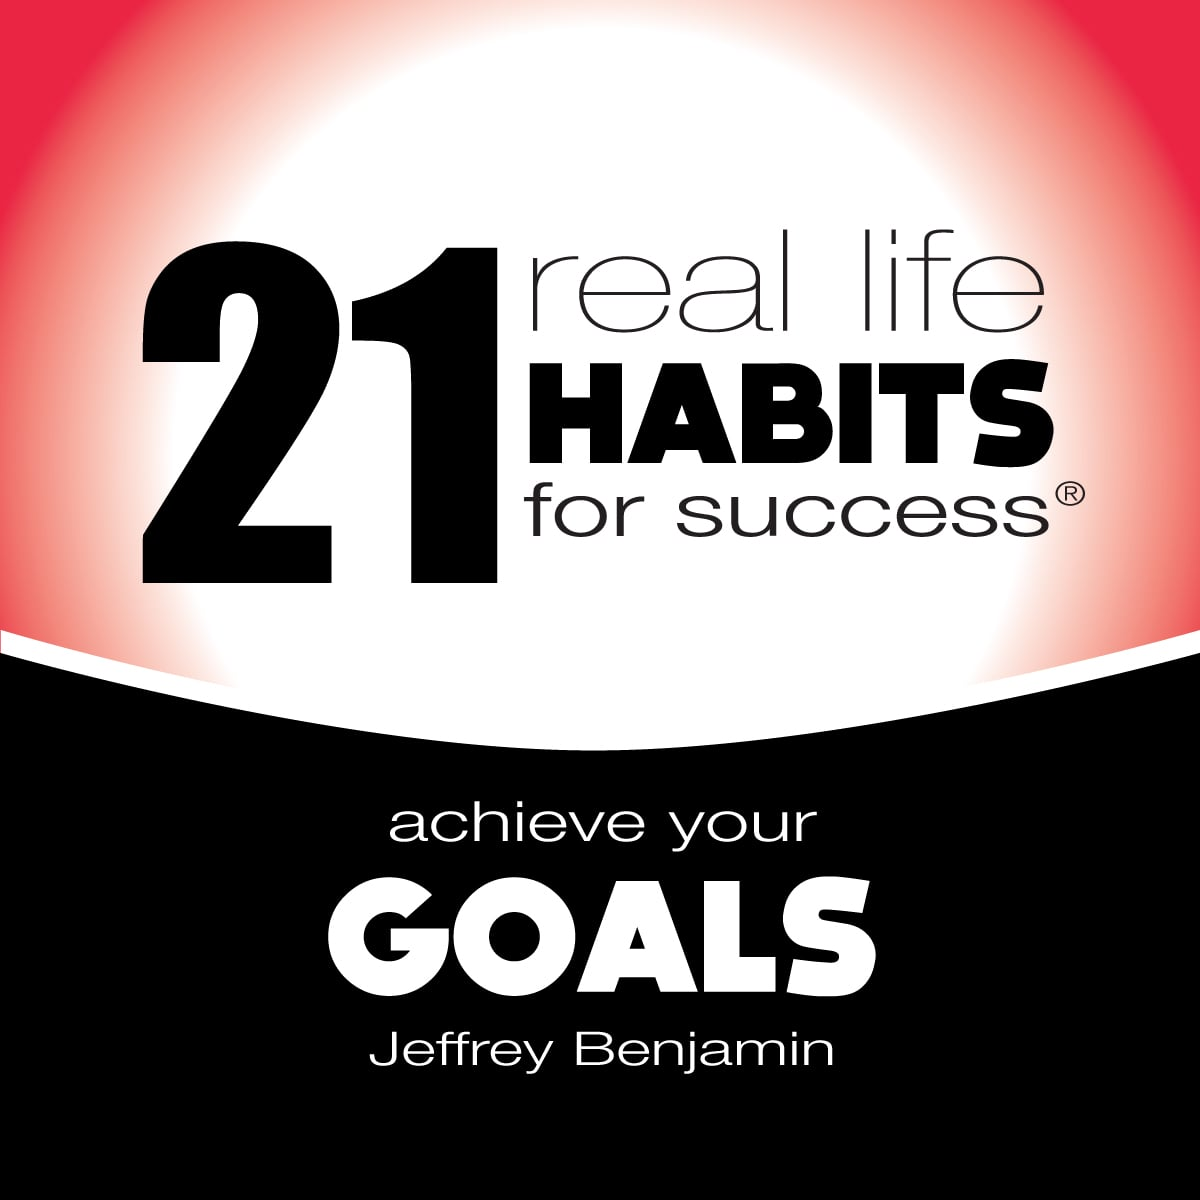 Achieve Your Goals - Real Life Habits for Success® by Jeffrey Benjamin